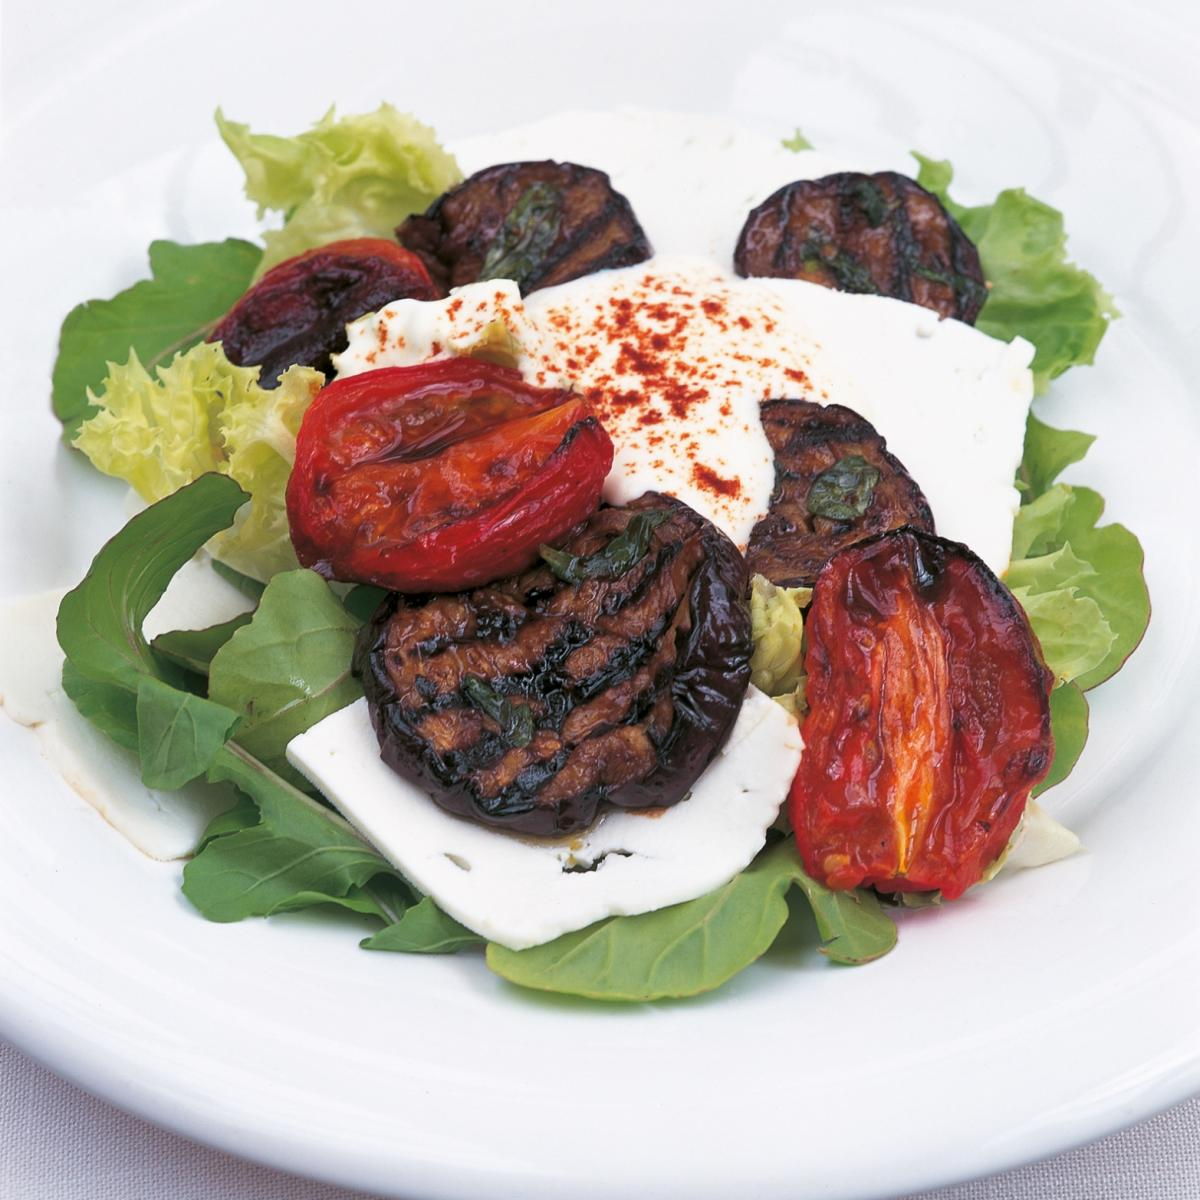 A picture of Delia's Char-grilled Aubergine and Roasted Tomato Salad with Feta Cheese recipe